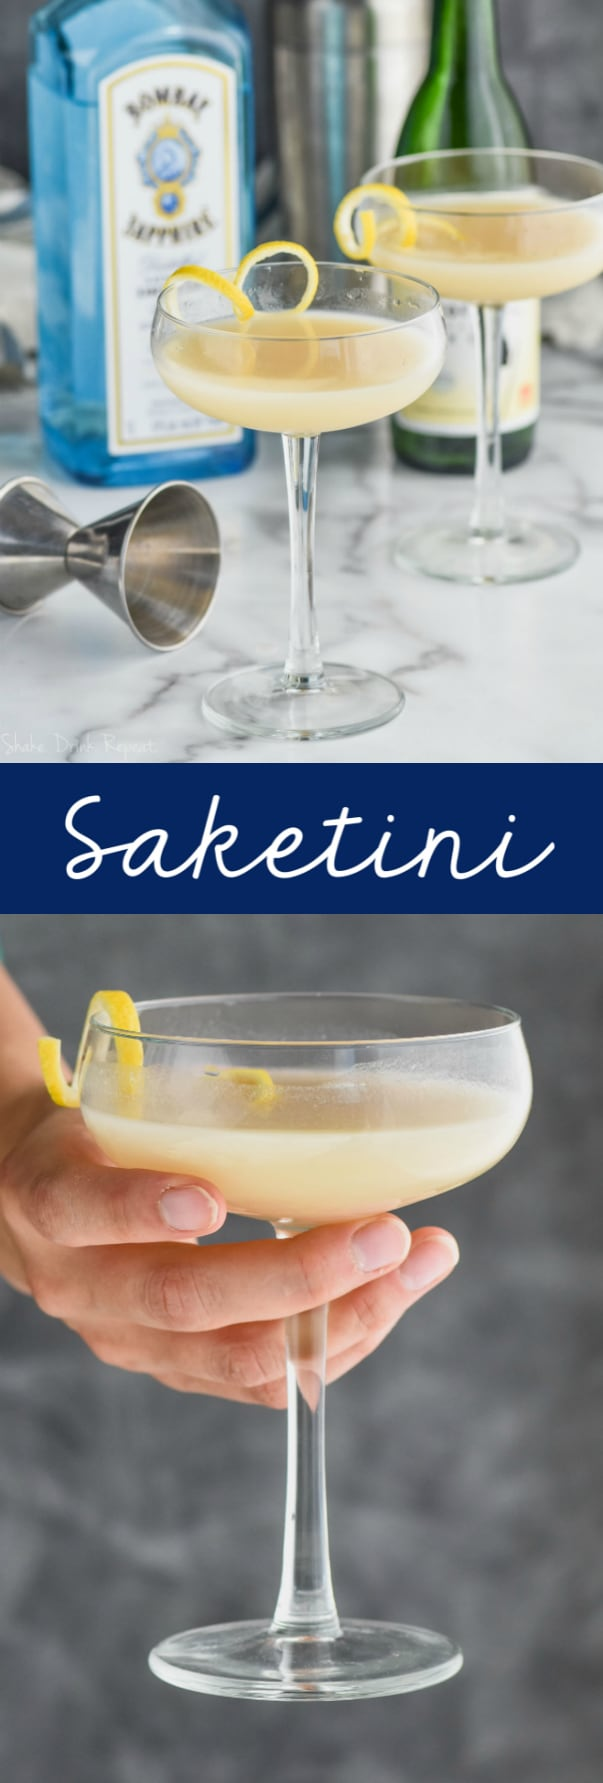 glass with saketini cocktail recipe in front of a bottle of gin and a bottle of sake